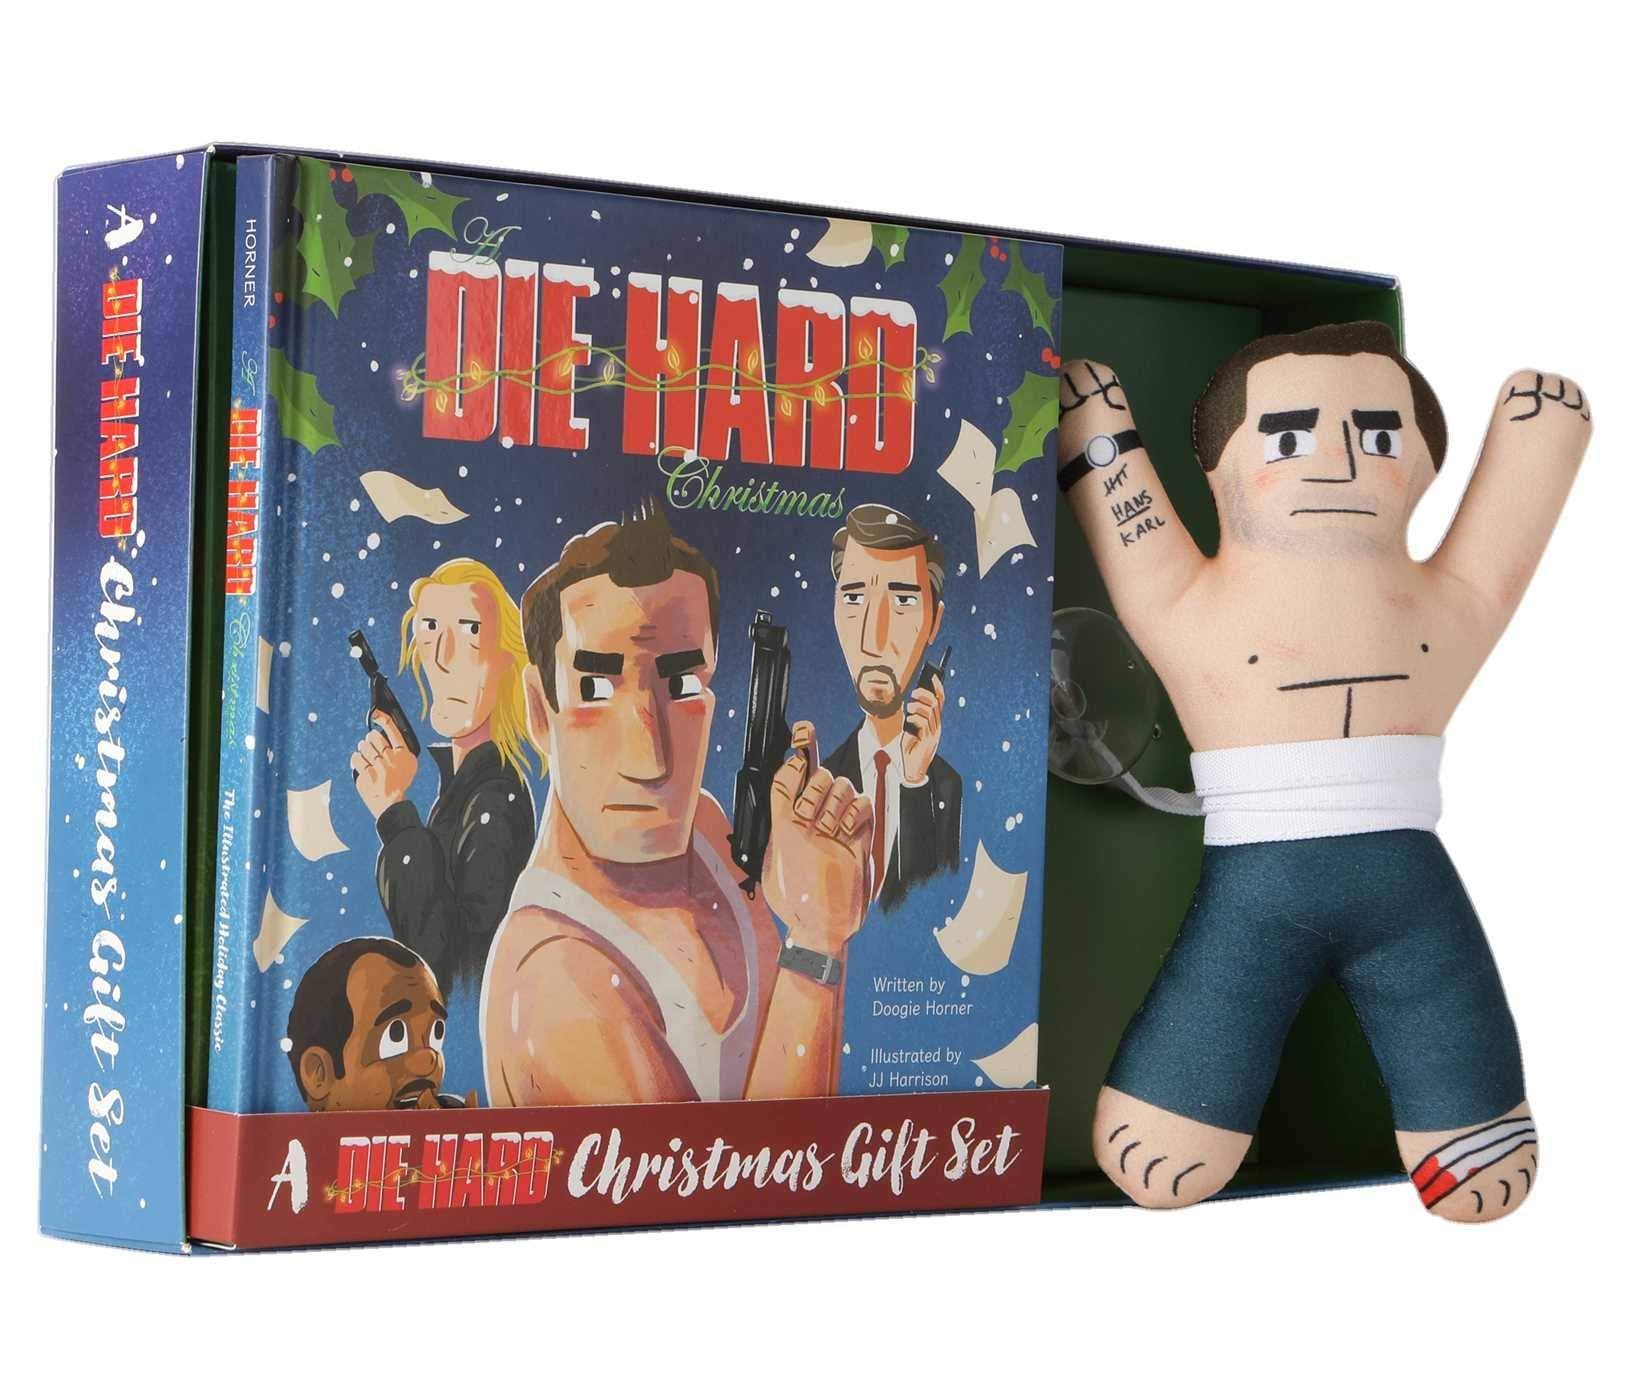 A Die Hard Christmas Gift Set